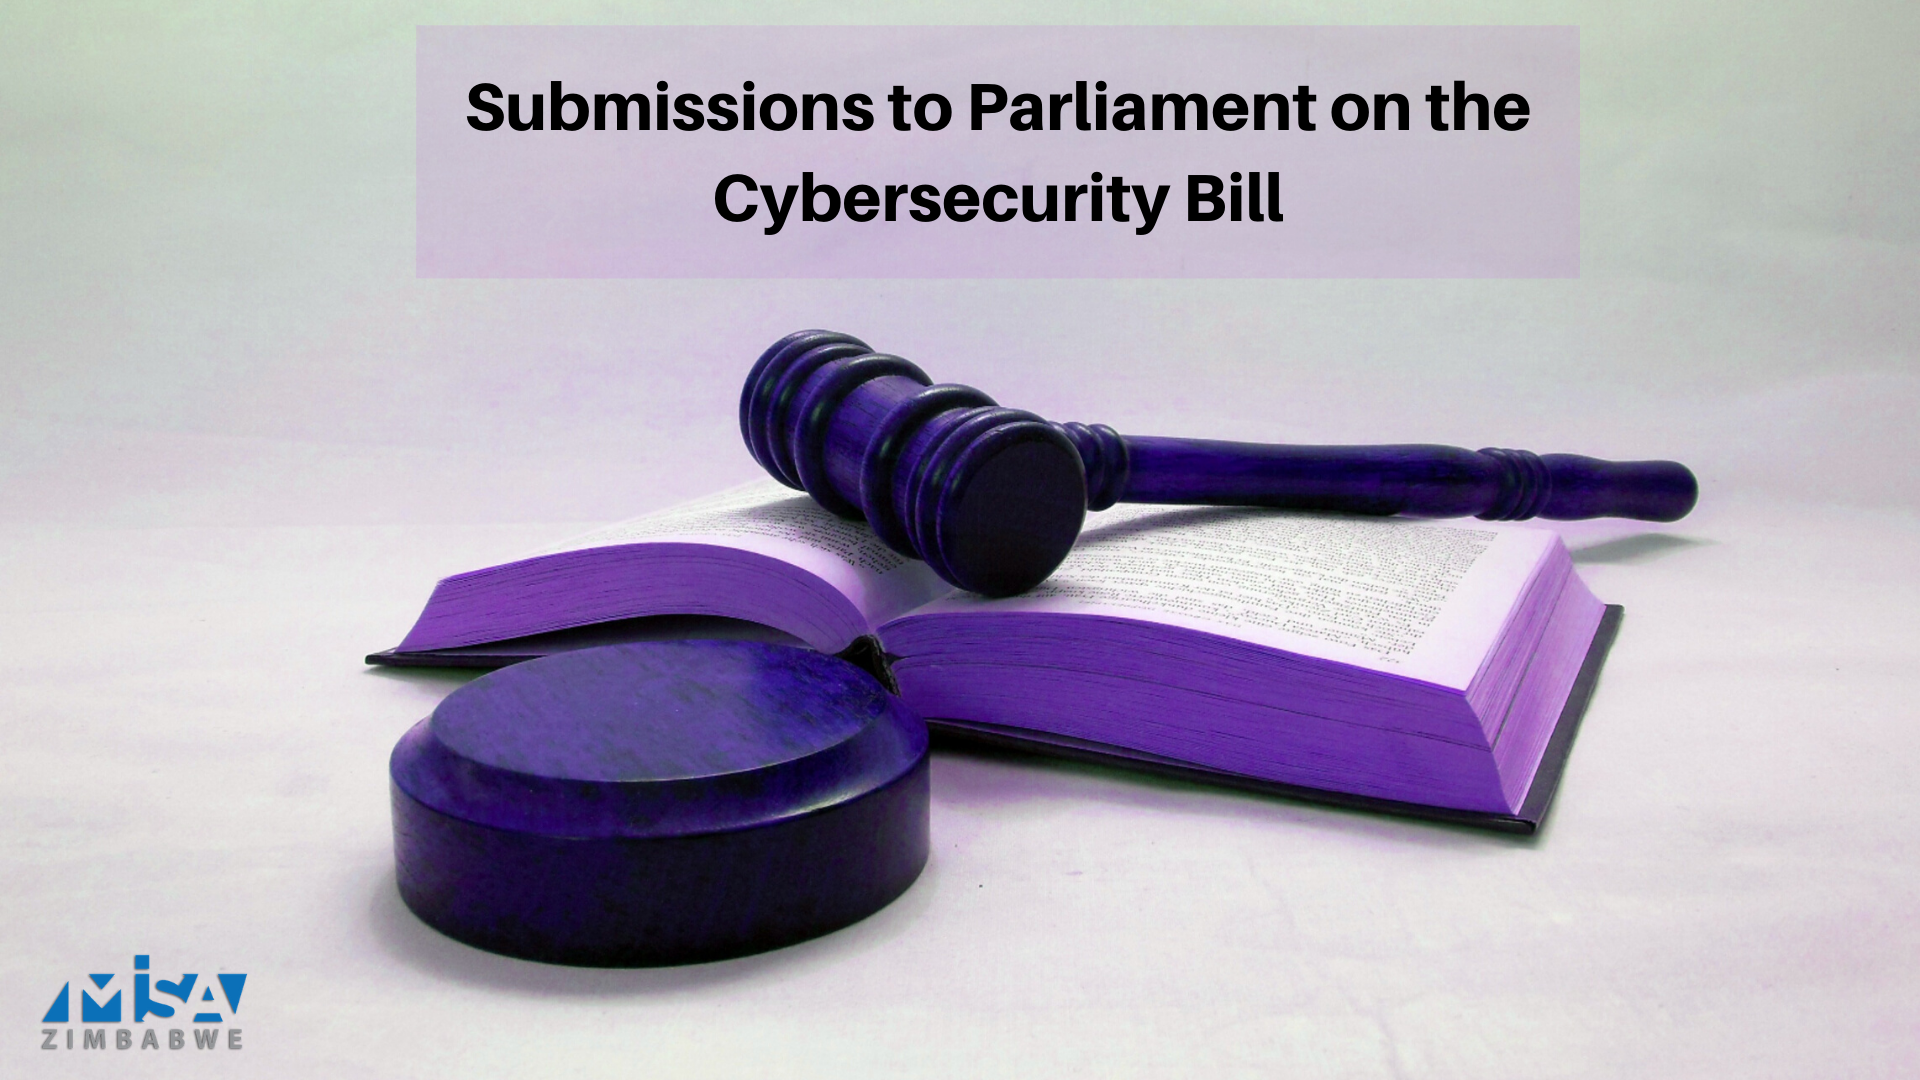 MISA writes to Parliament: Submissions on the Cybersecurity Bill